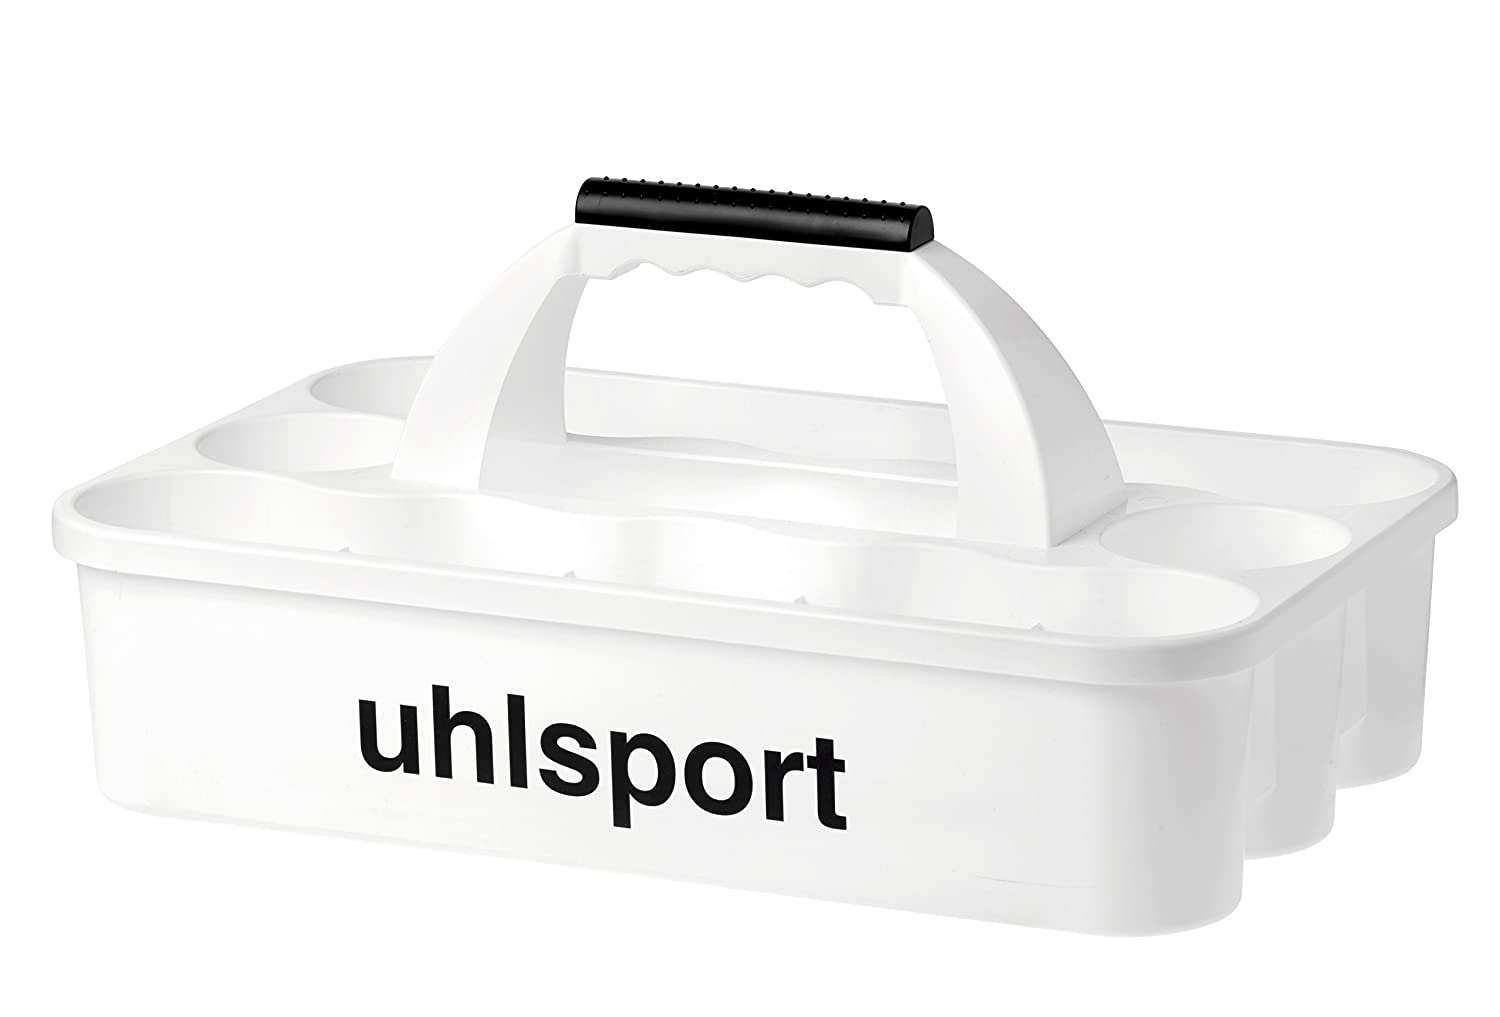 Uhlsport portabotellas